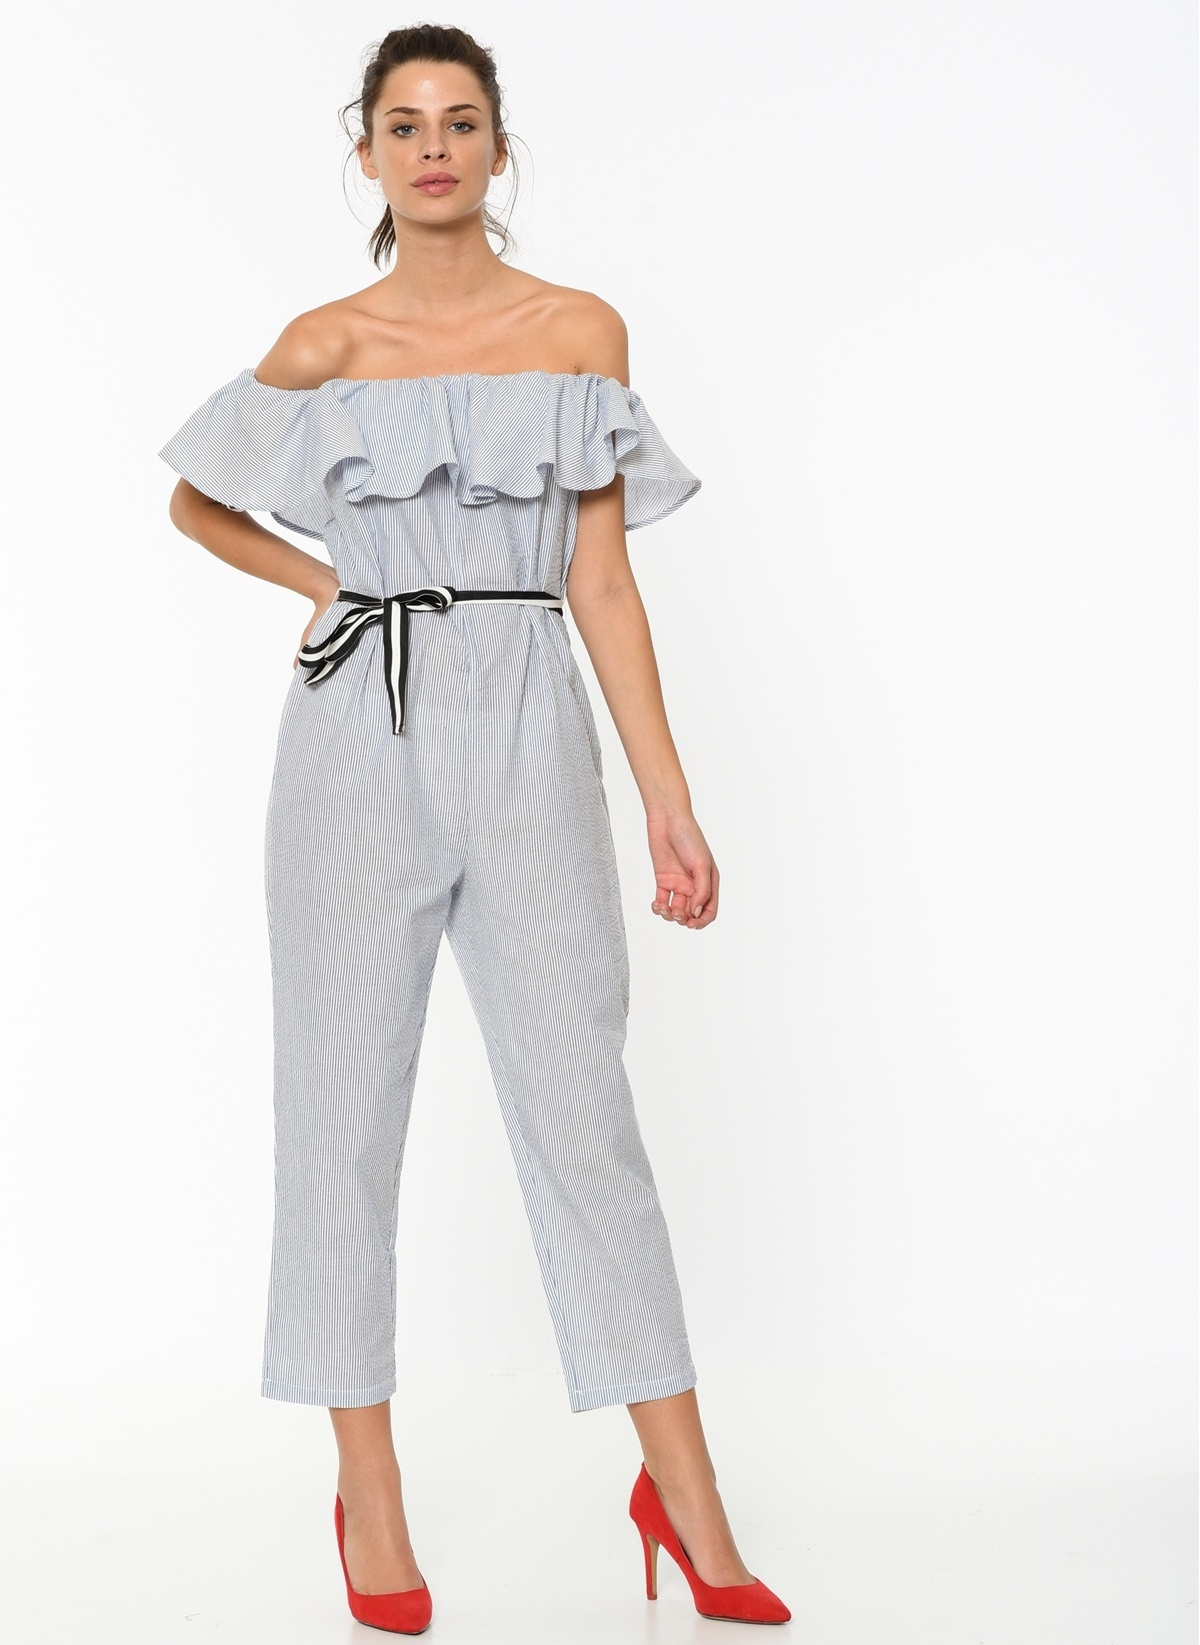 Only Tulum 15155984 Onlshirt Frill Jumpsuit Wvn – 79.9 TL